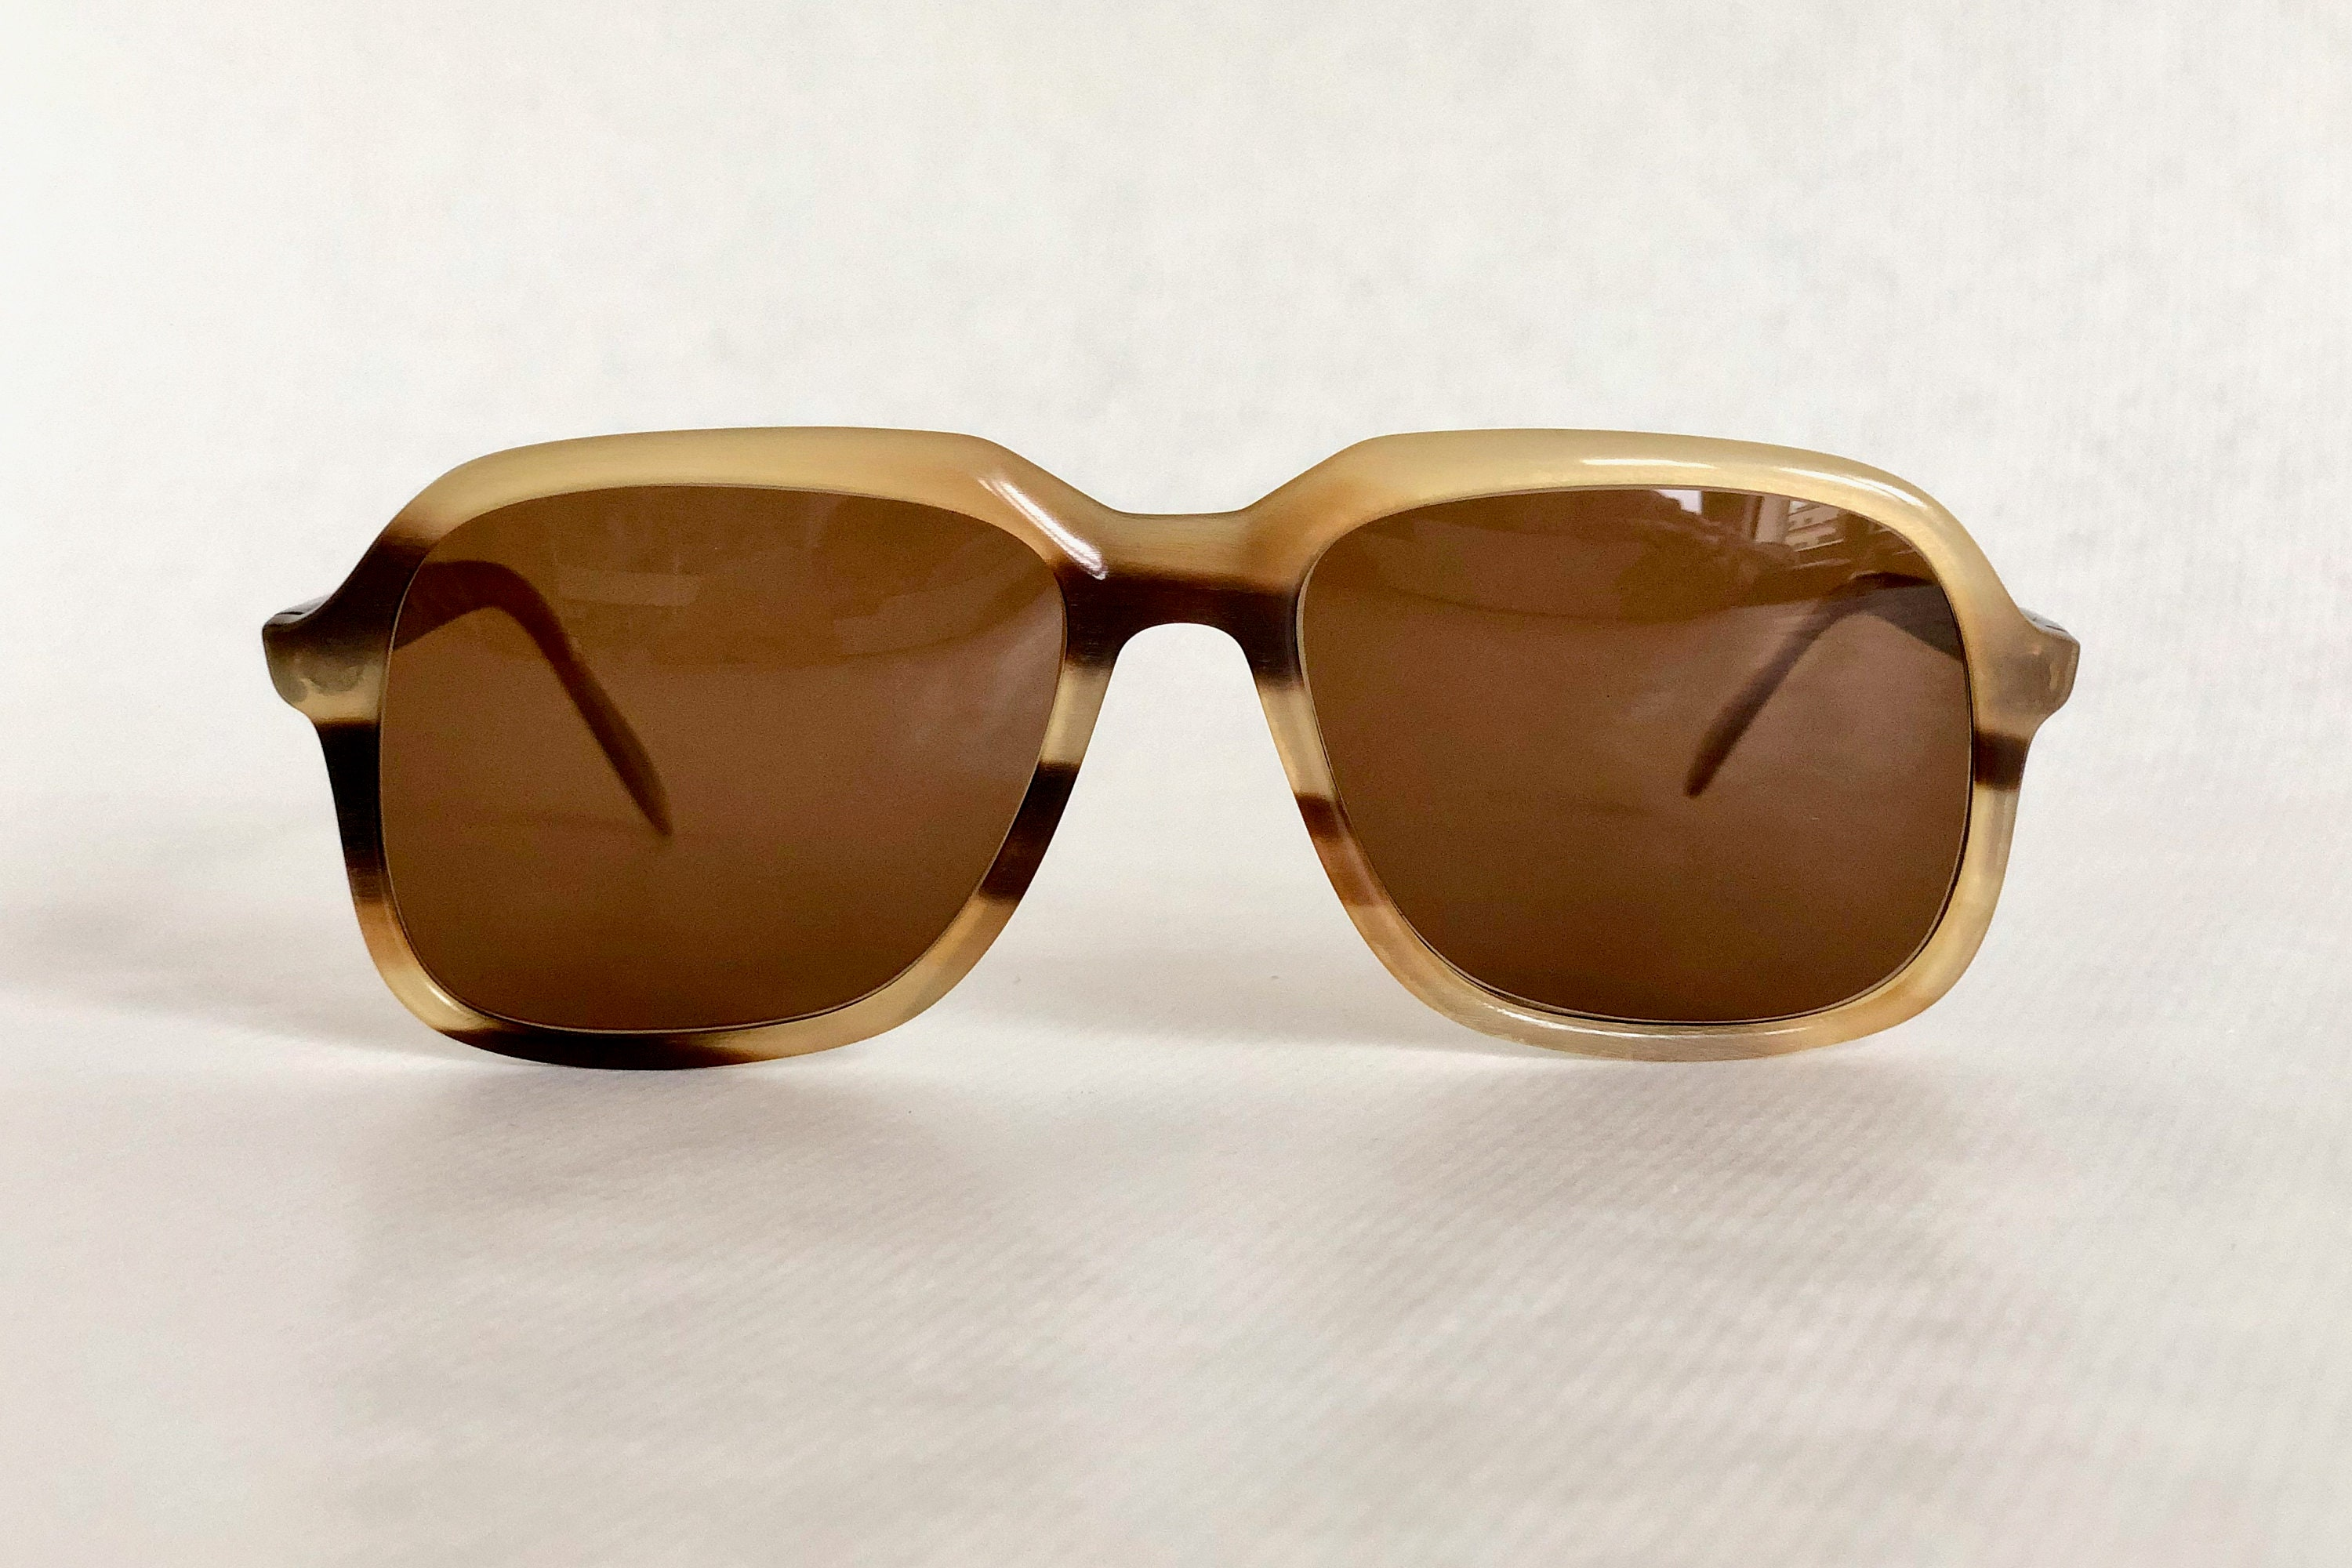 966c1f90d Köln Optik Genuine Irish Horn Vintage Sunglasses New Unworn Deadstock.  gallery photo ...